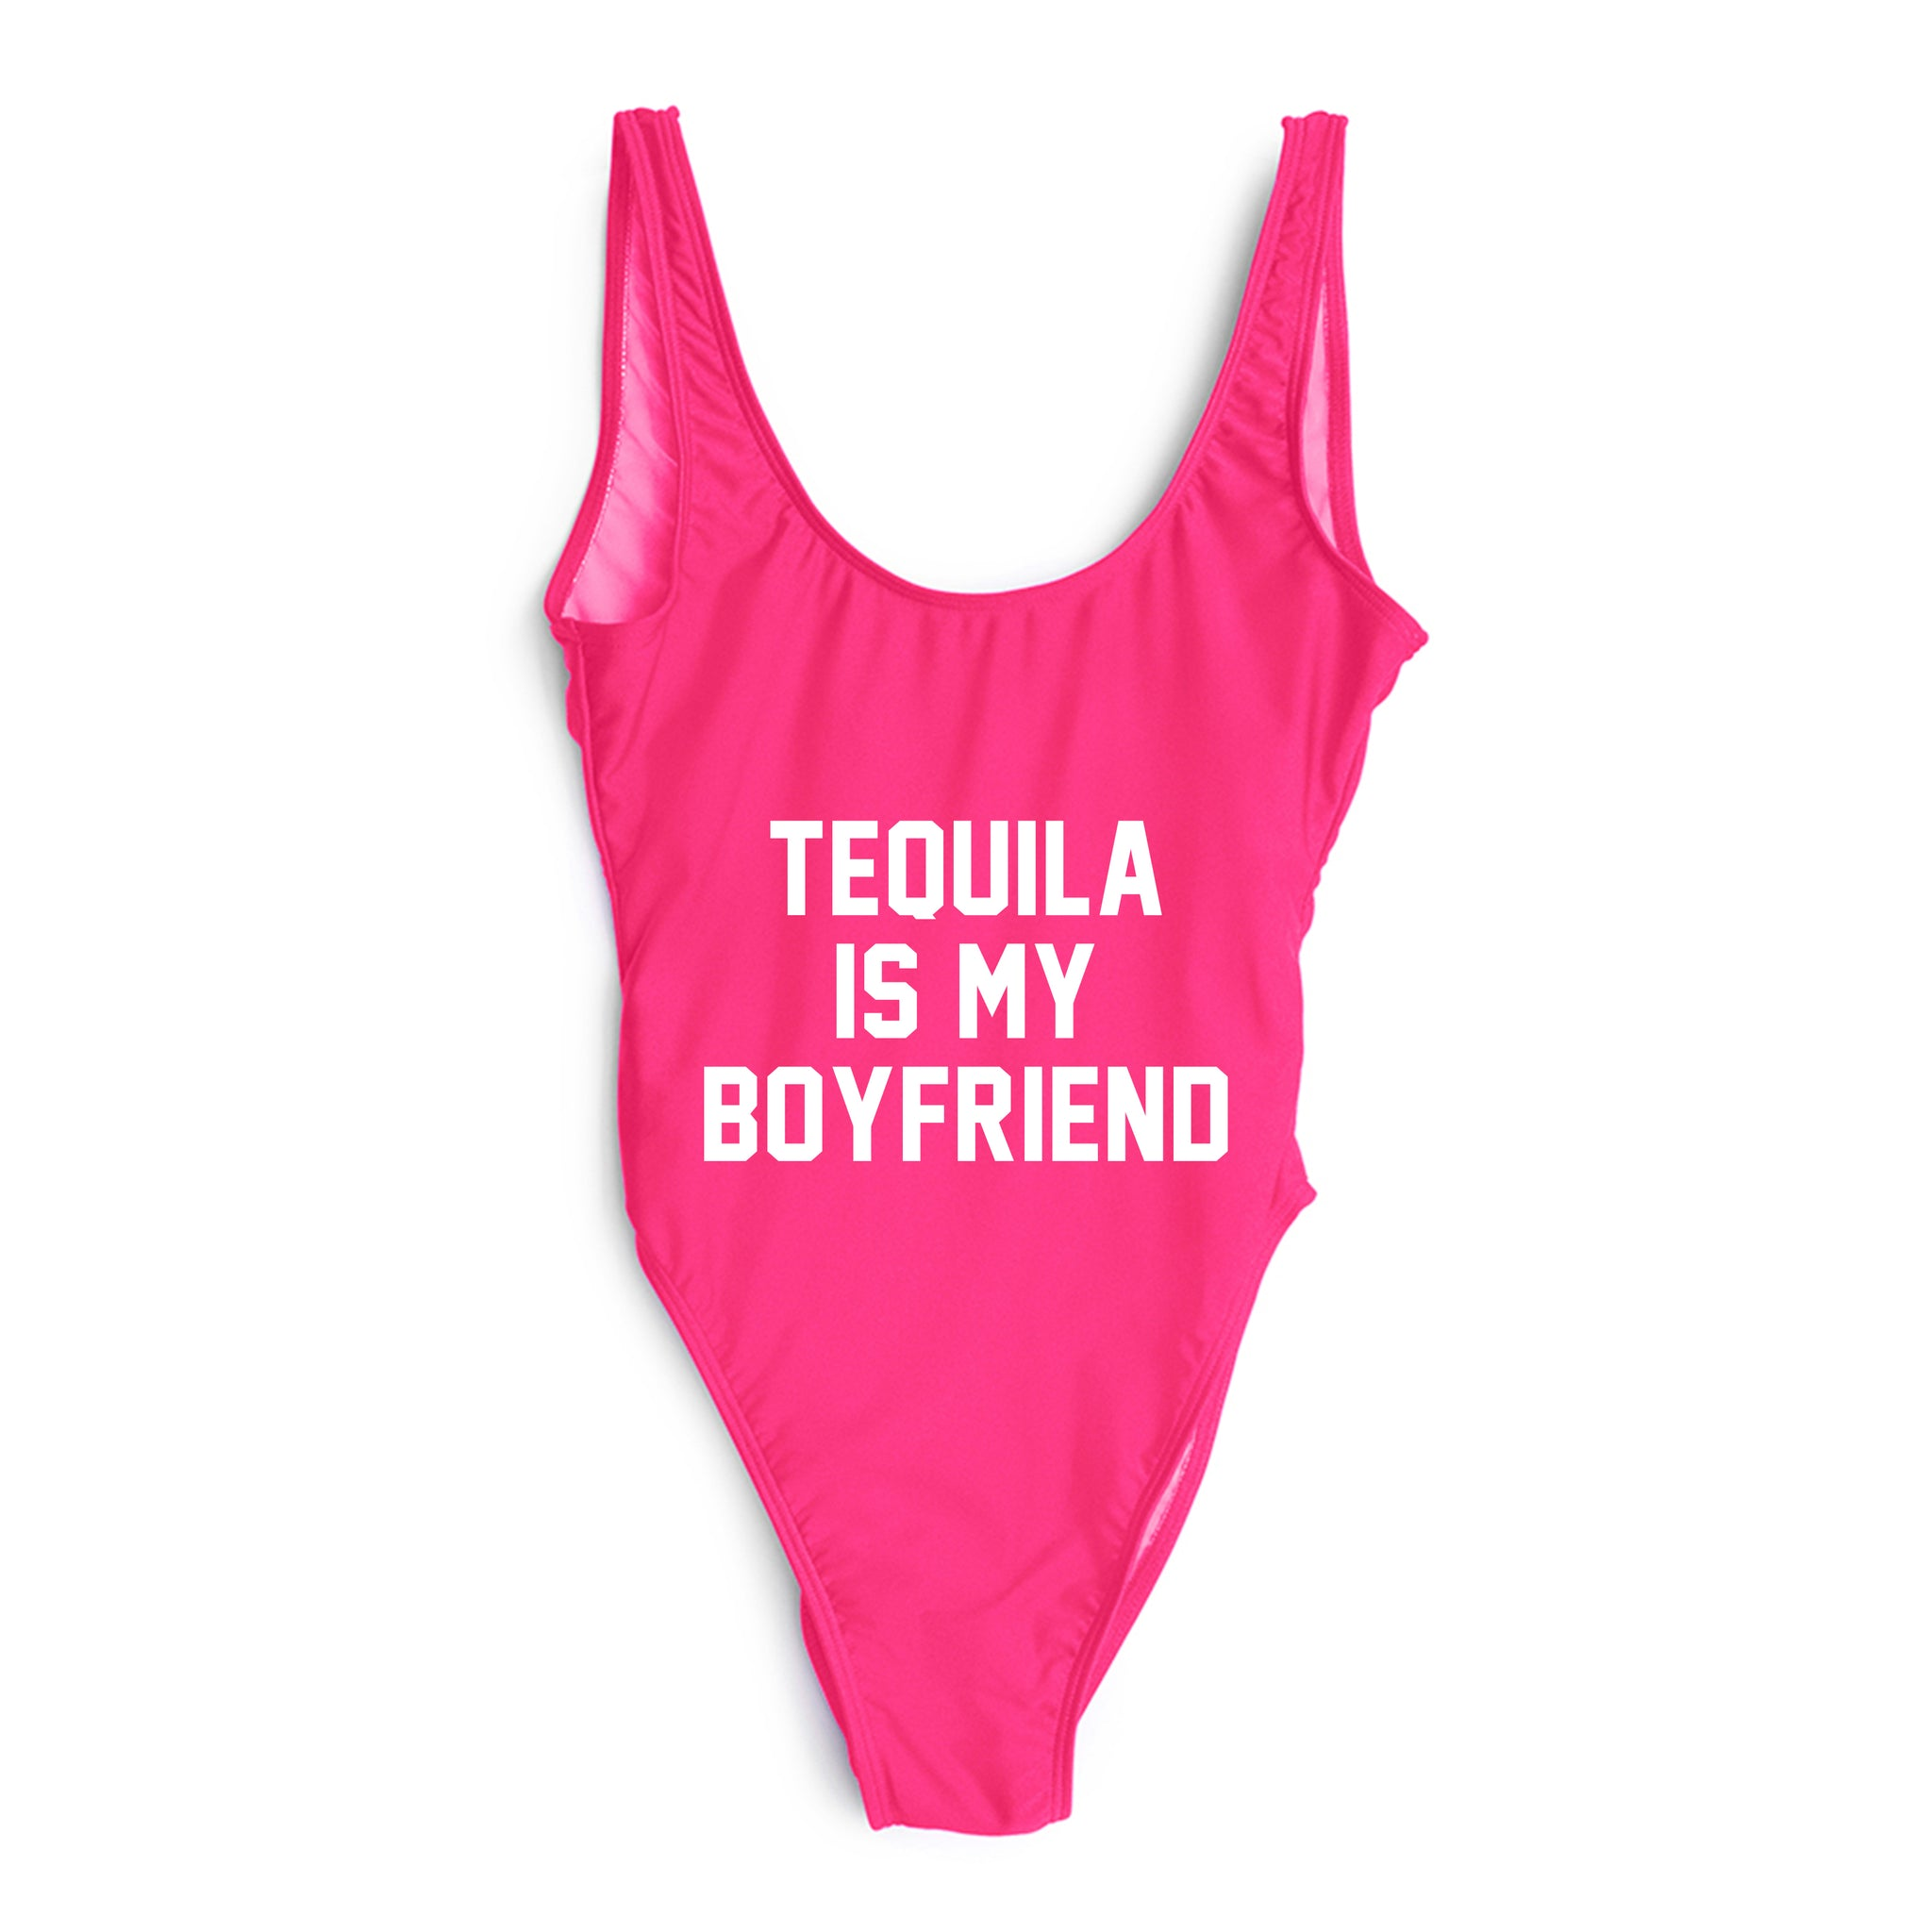 TEQUILA IS MY BOYFRIEND [SWIMSUIT]